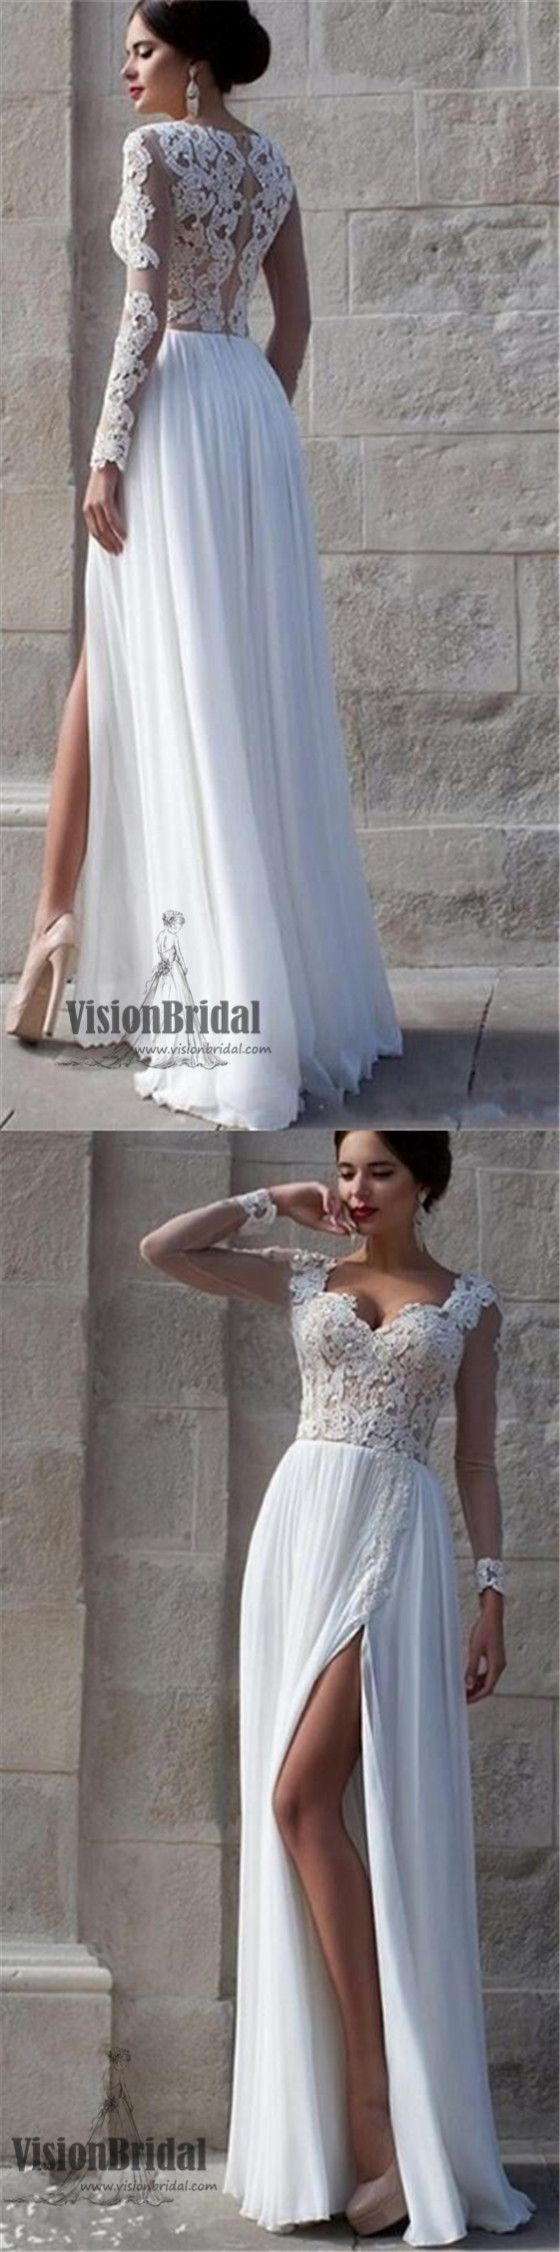 Top see through white sweetheart lace tulle prom dress long sleeves